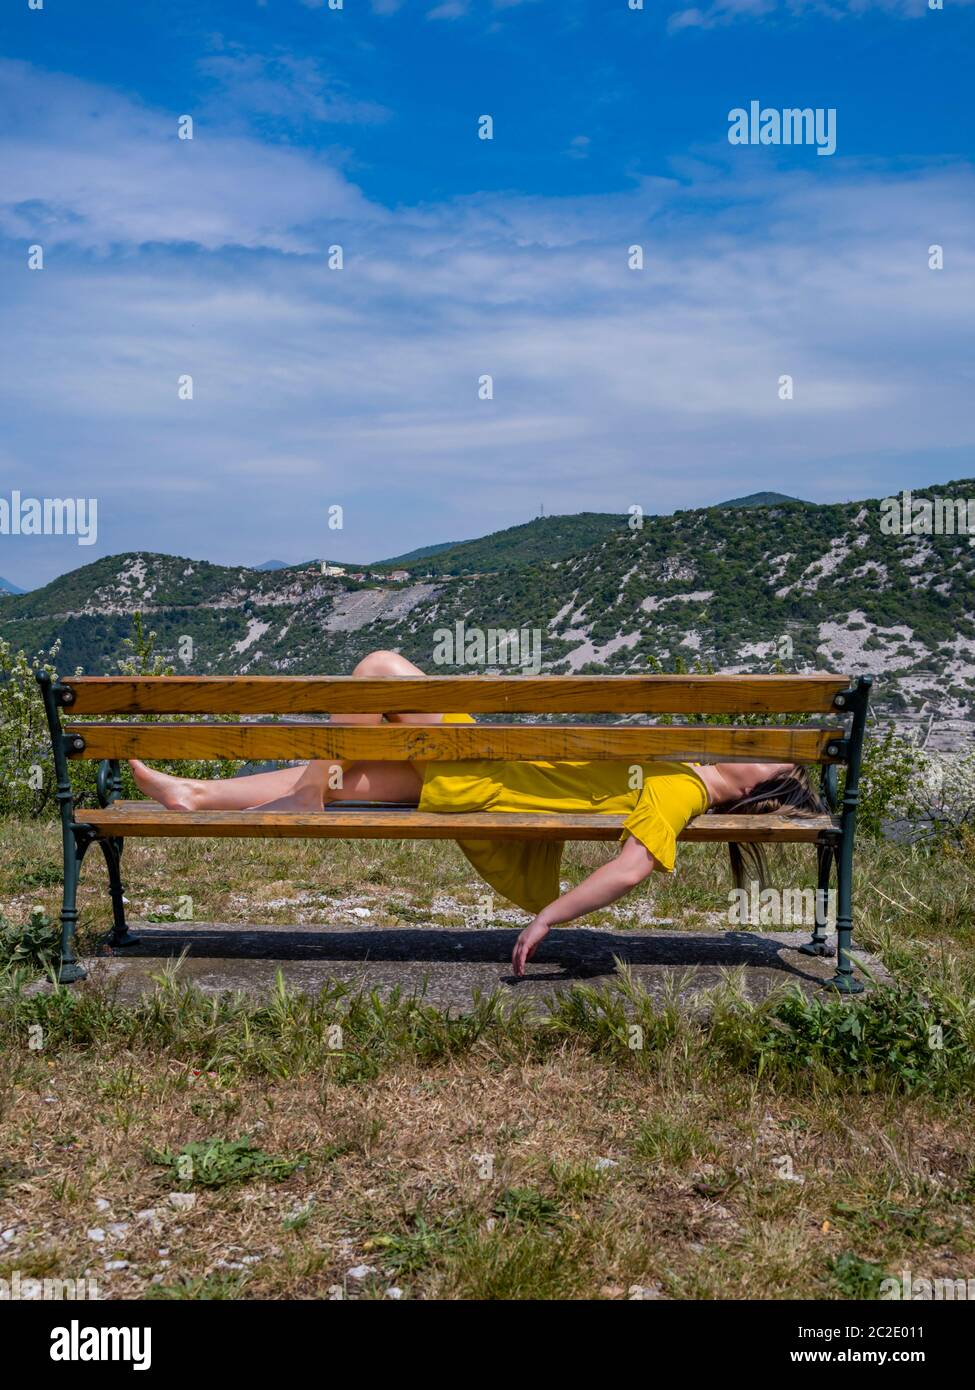 Teengirl resting relaxing tired on park bench sideview side-view Stock Photo